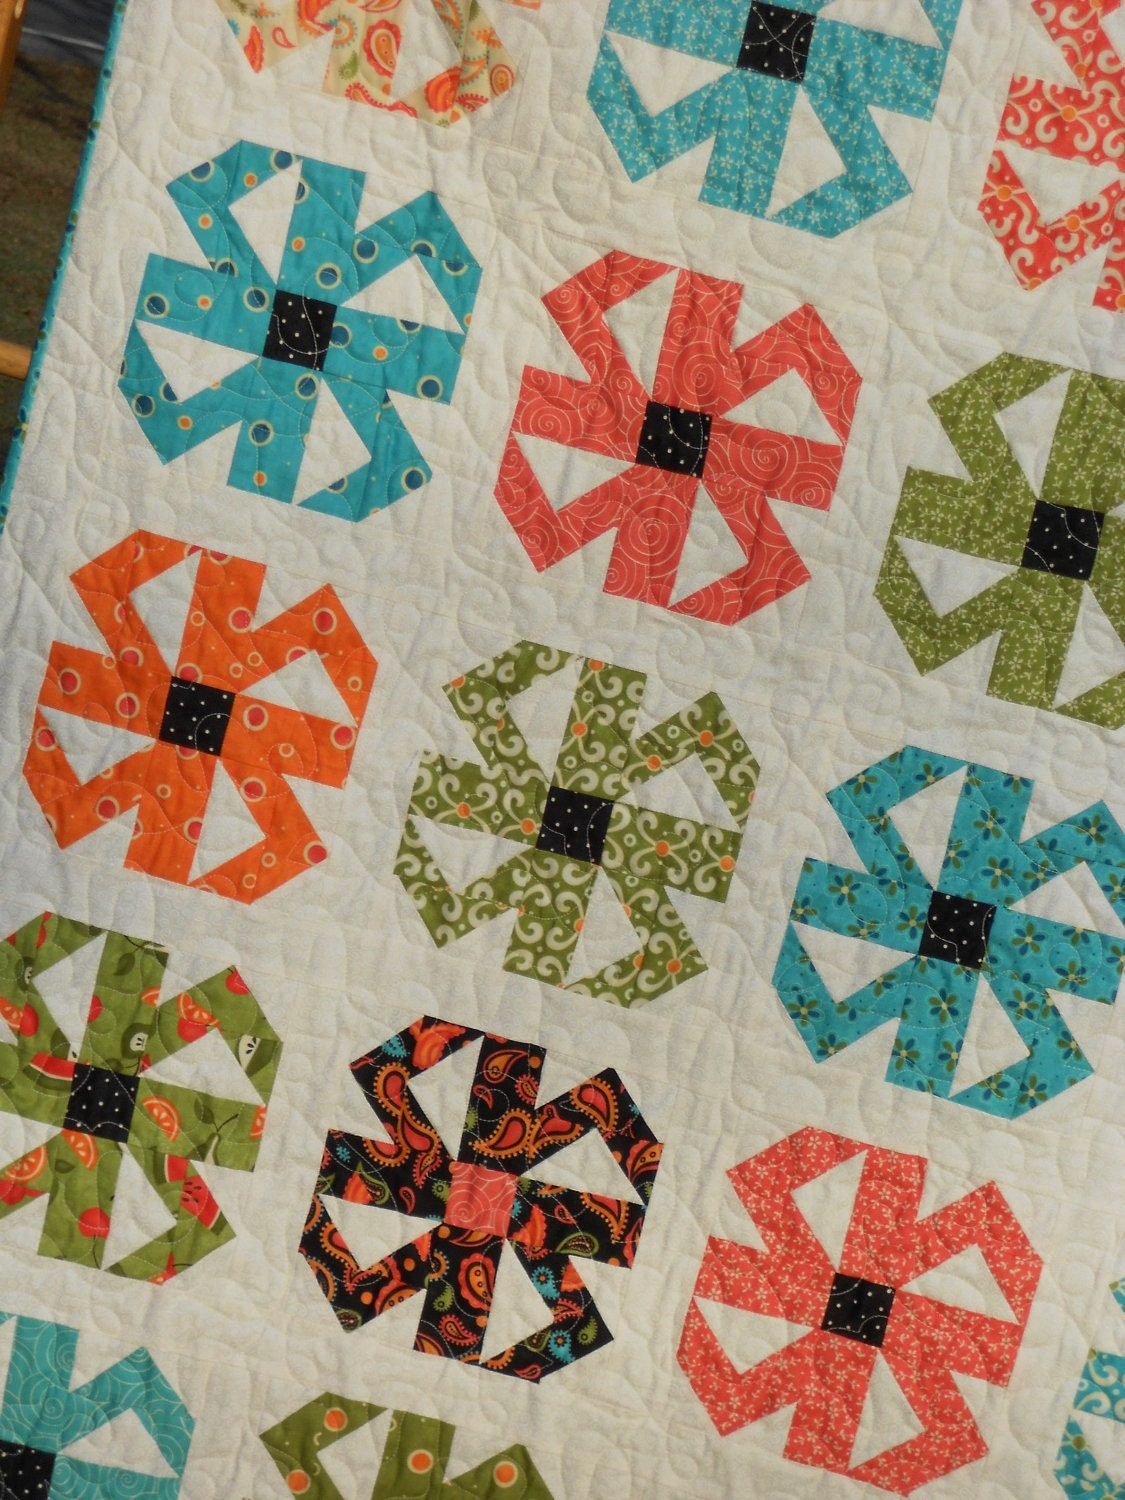 Cake Decorating Quilt Design : Free Quilt Pattern Layer Cake images